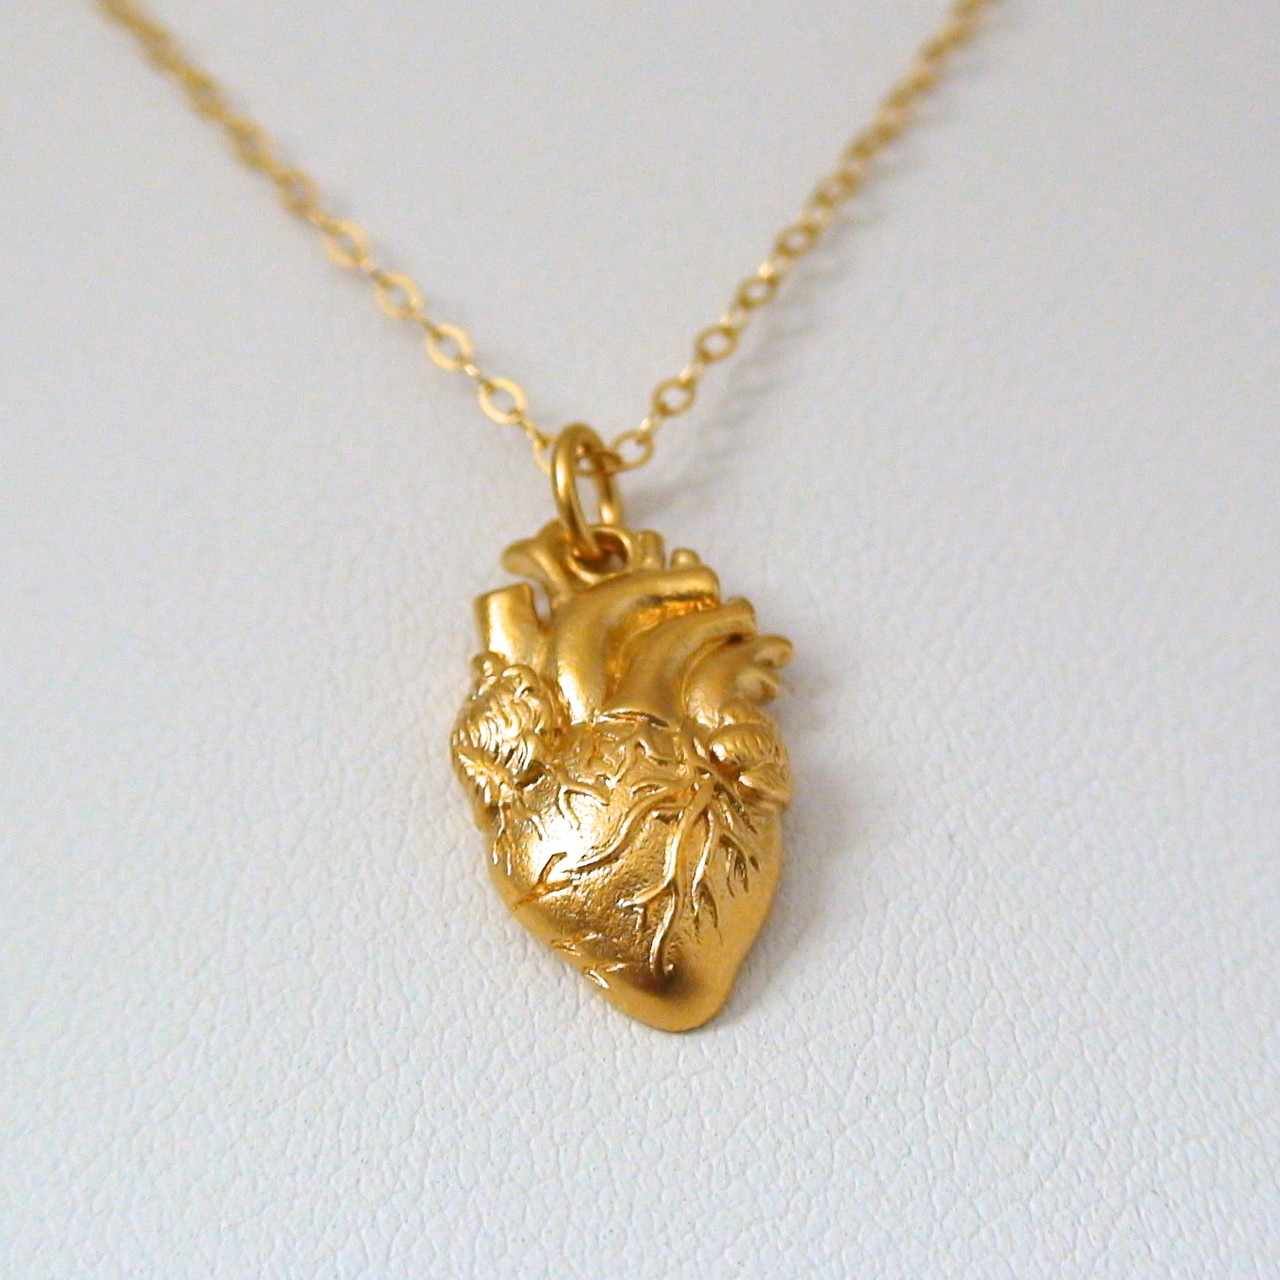 24k gold plate sterling silver anatomical heart necklace gold anatomical heart charm necklace aloadofball Gallery